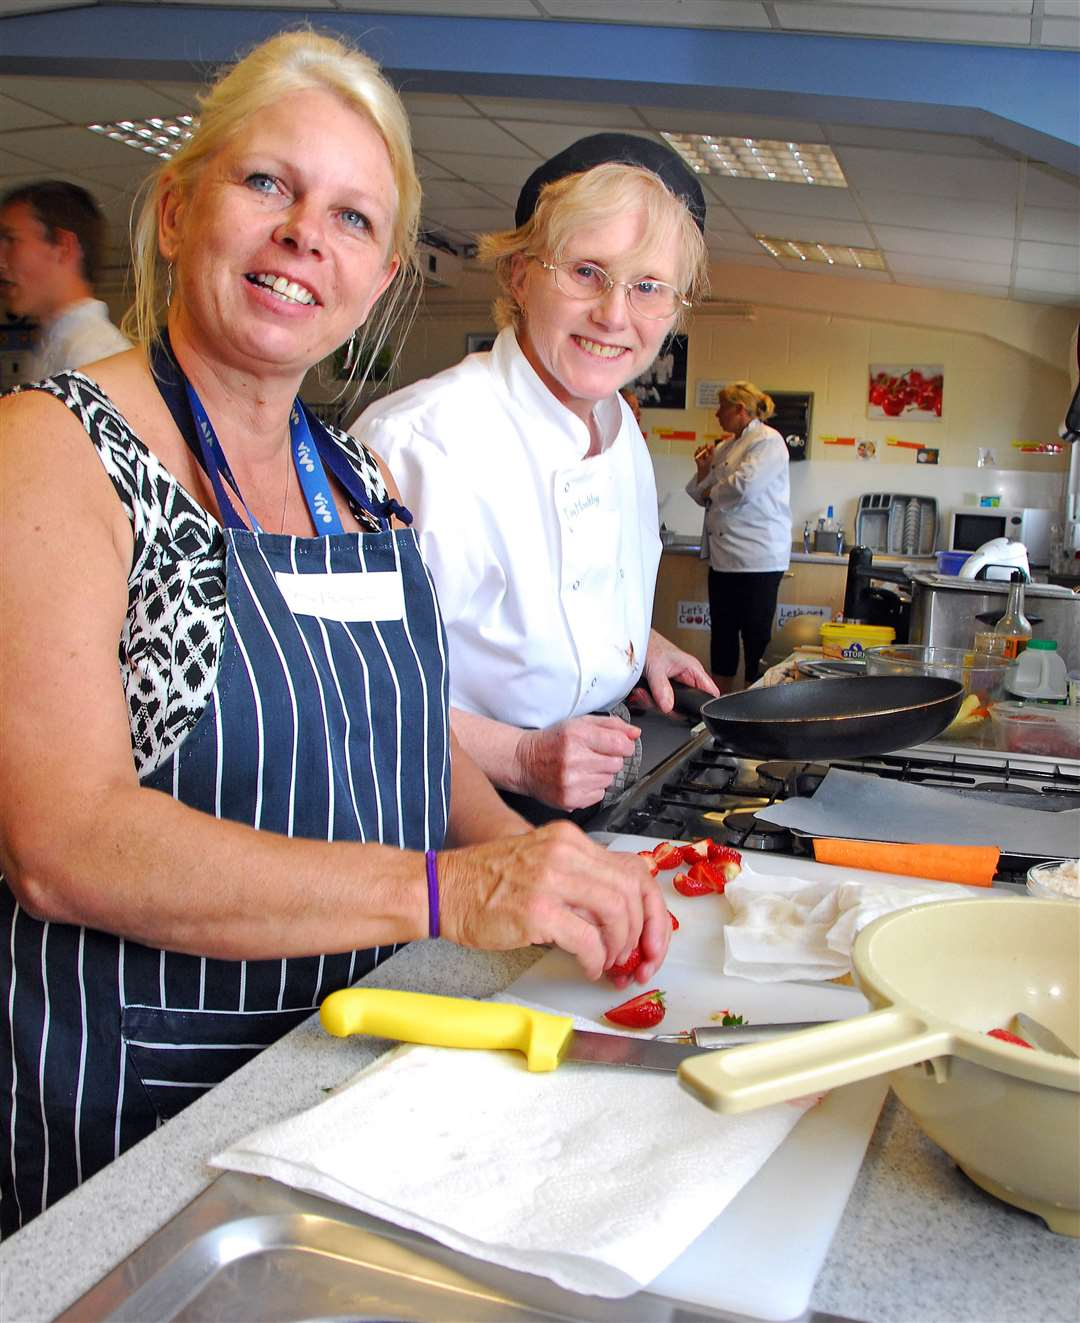 Fay Baillie (right) takes part in a cookery competition, with Jenny Thompson, for staff at Thomas Cowley High School, Donington. Photo by Tim Wilson. SG090714-135TW